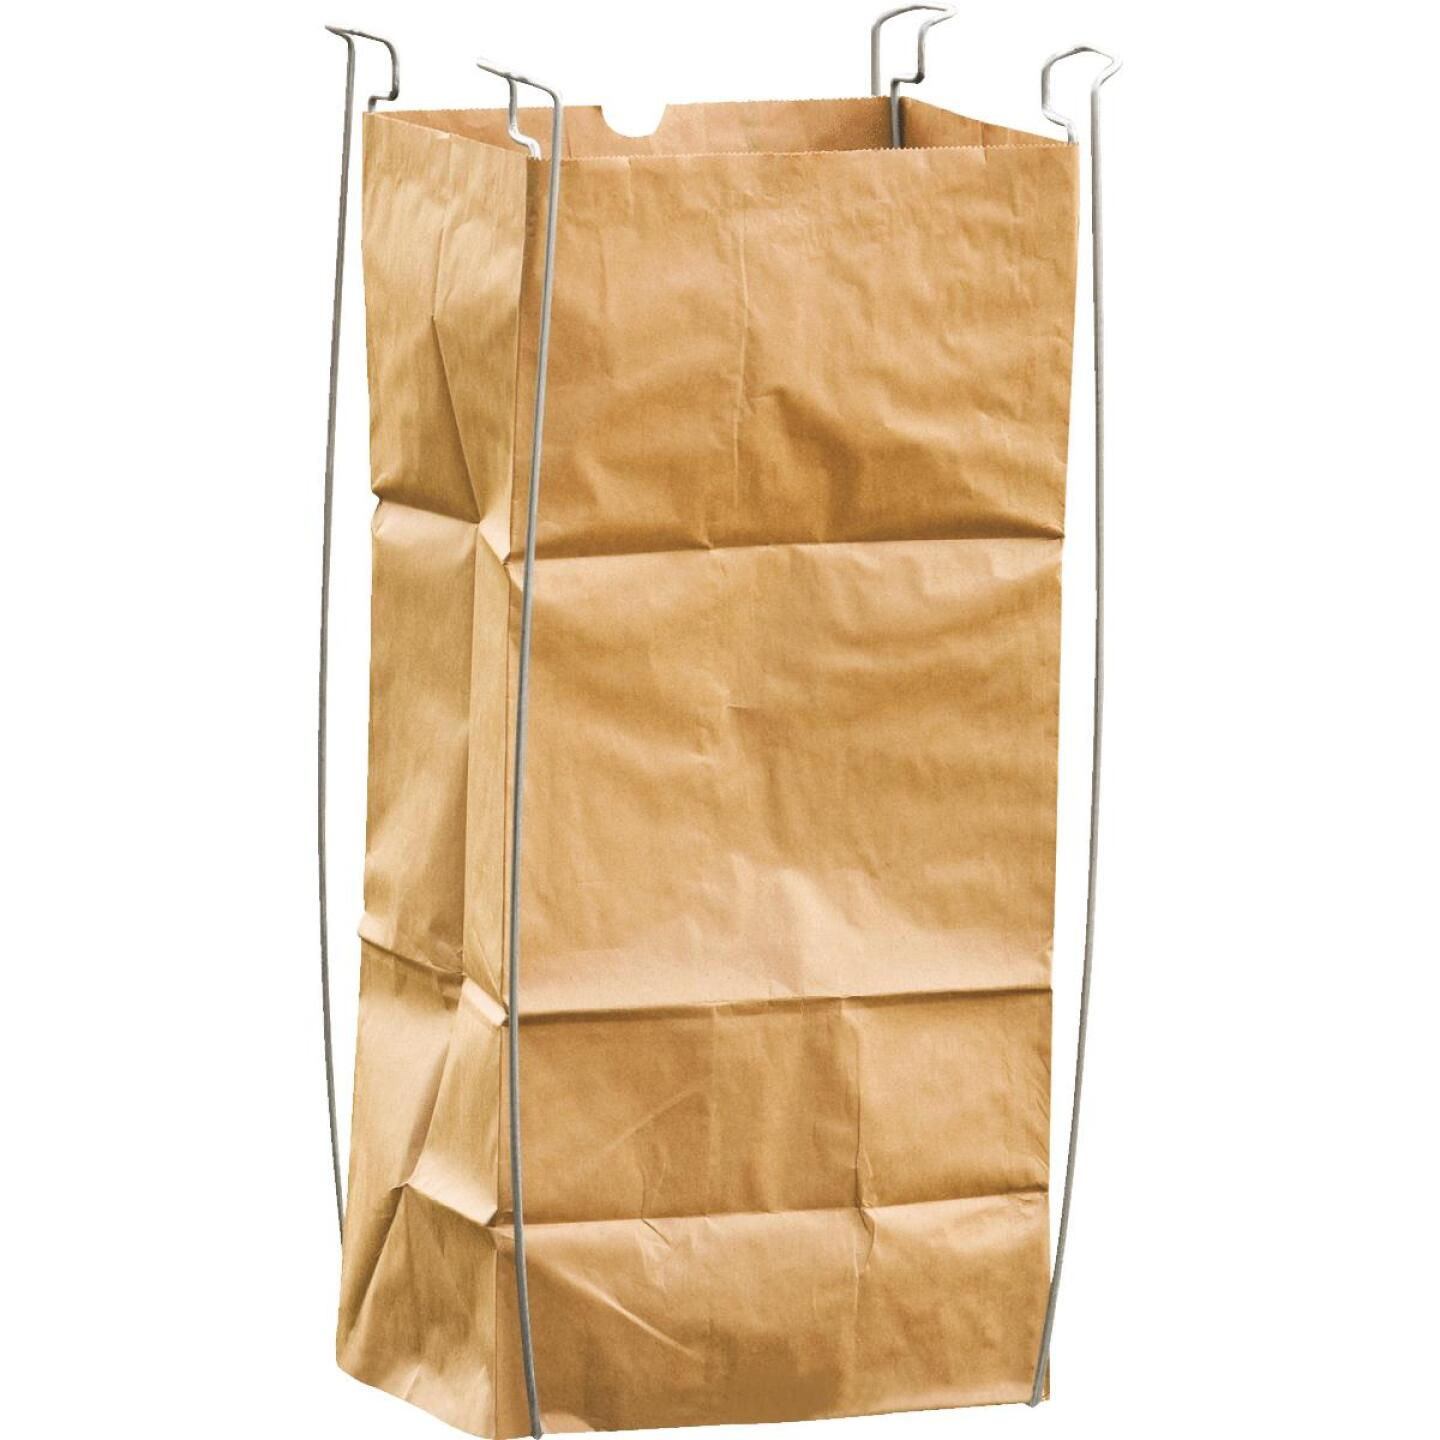 Bag Buddy 55 Gal. Plastic Bag/48 Gal. Paper Bag Capacity Wire Frame Lawn & Yard Bag Holder Image 5